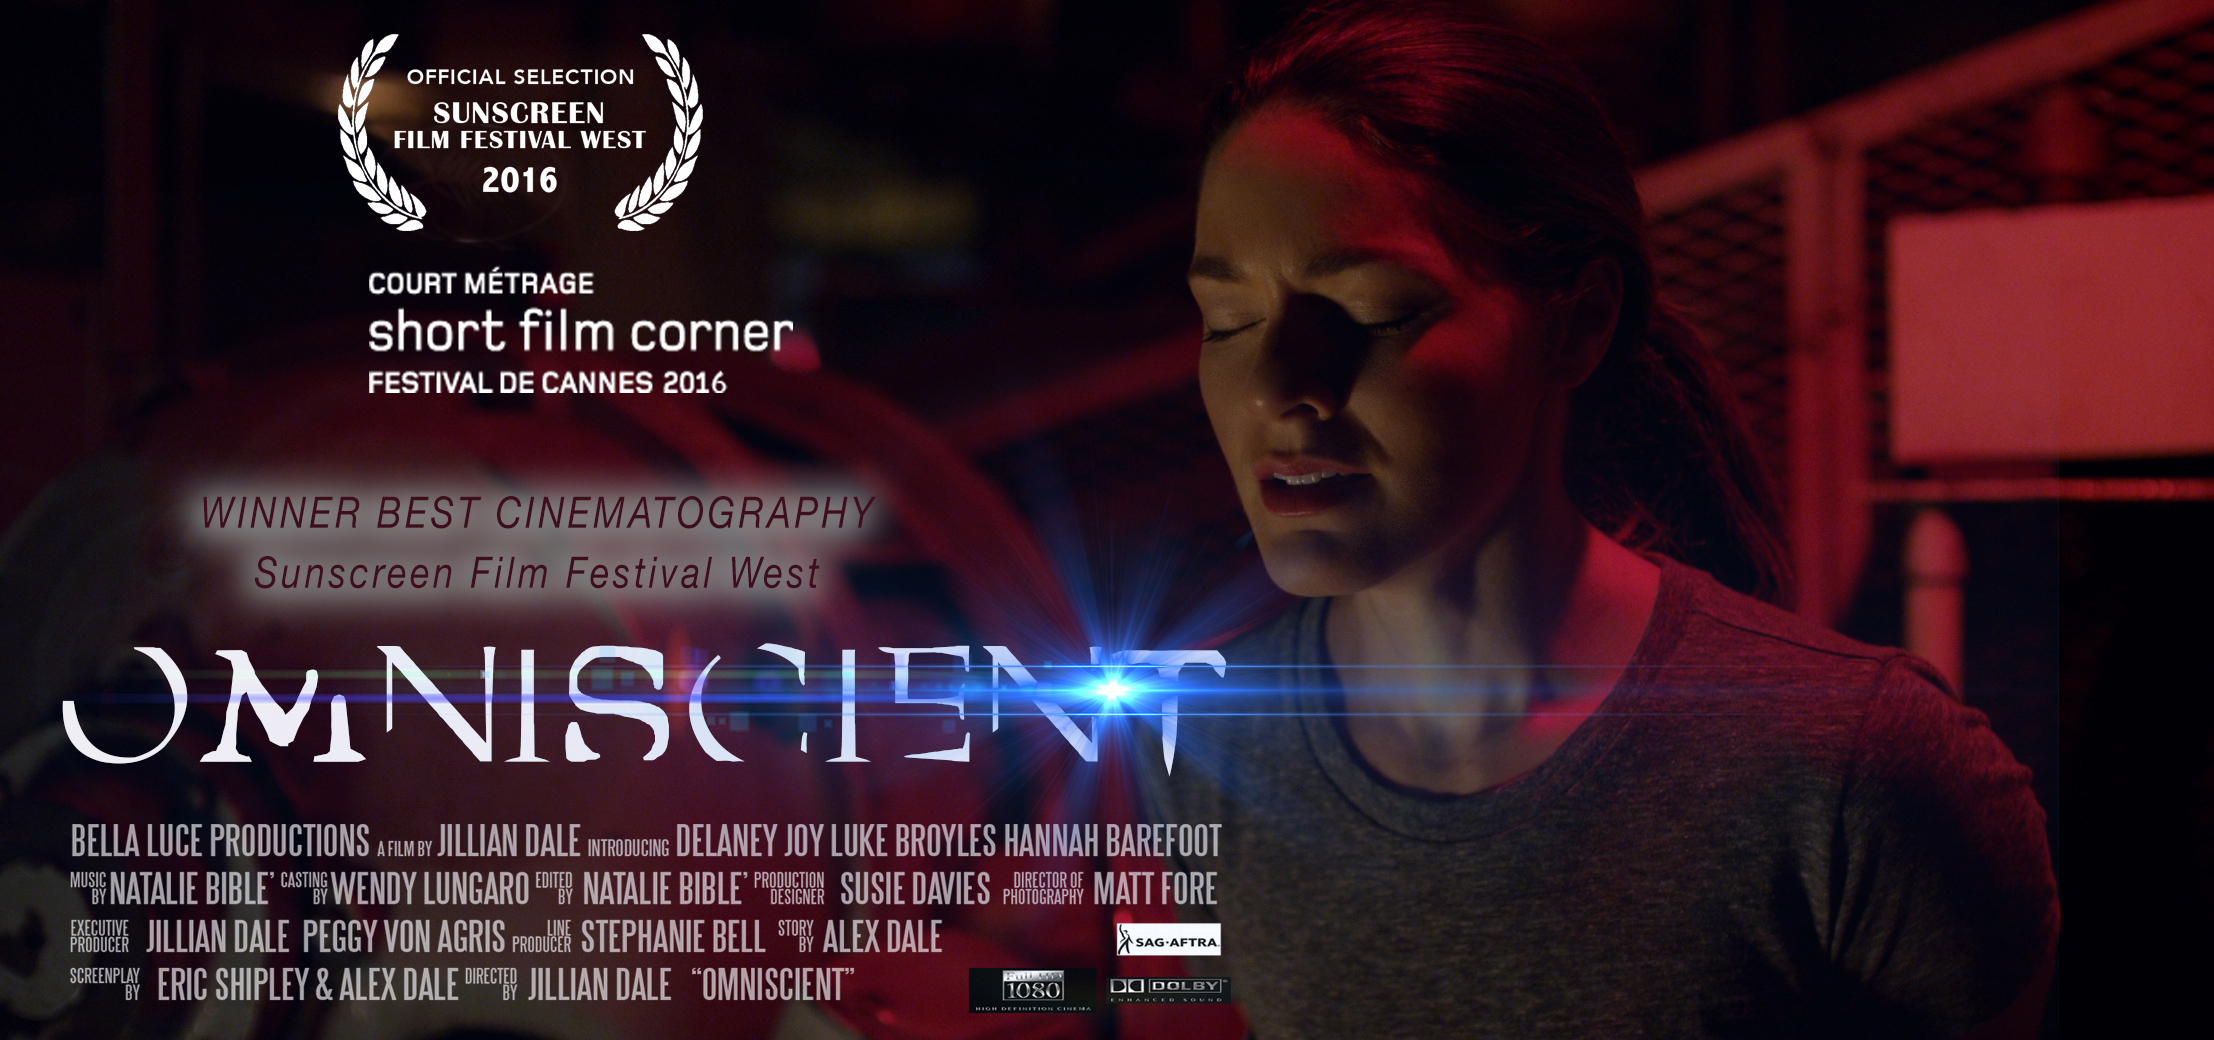 Omniscient Film Produced by Bella Luce Productions, Directed by Jillian Dale